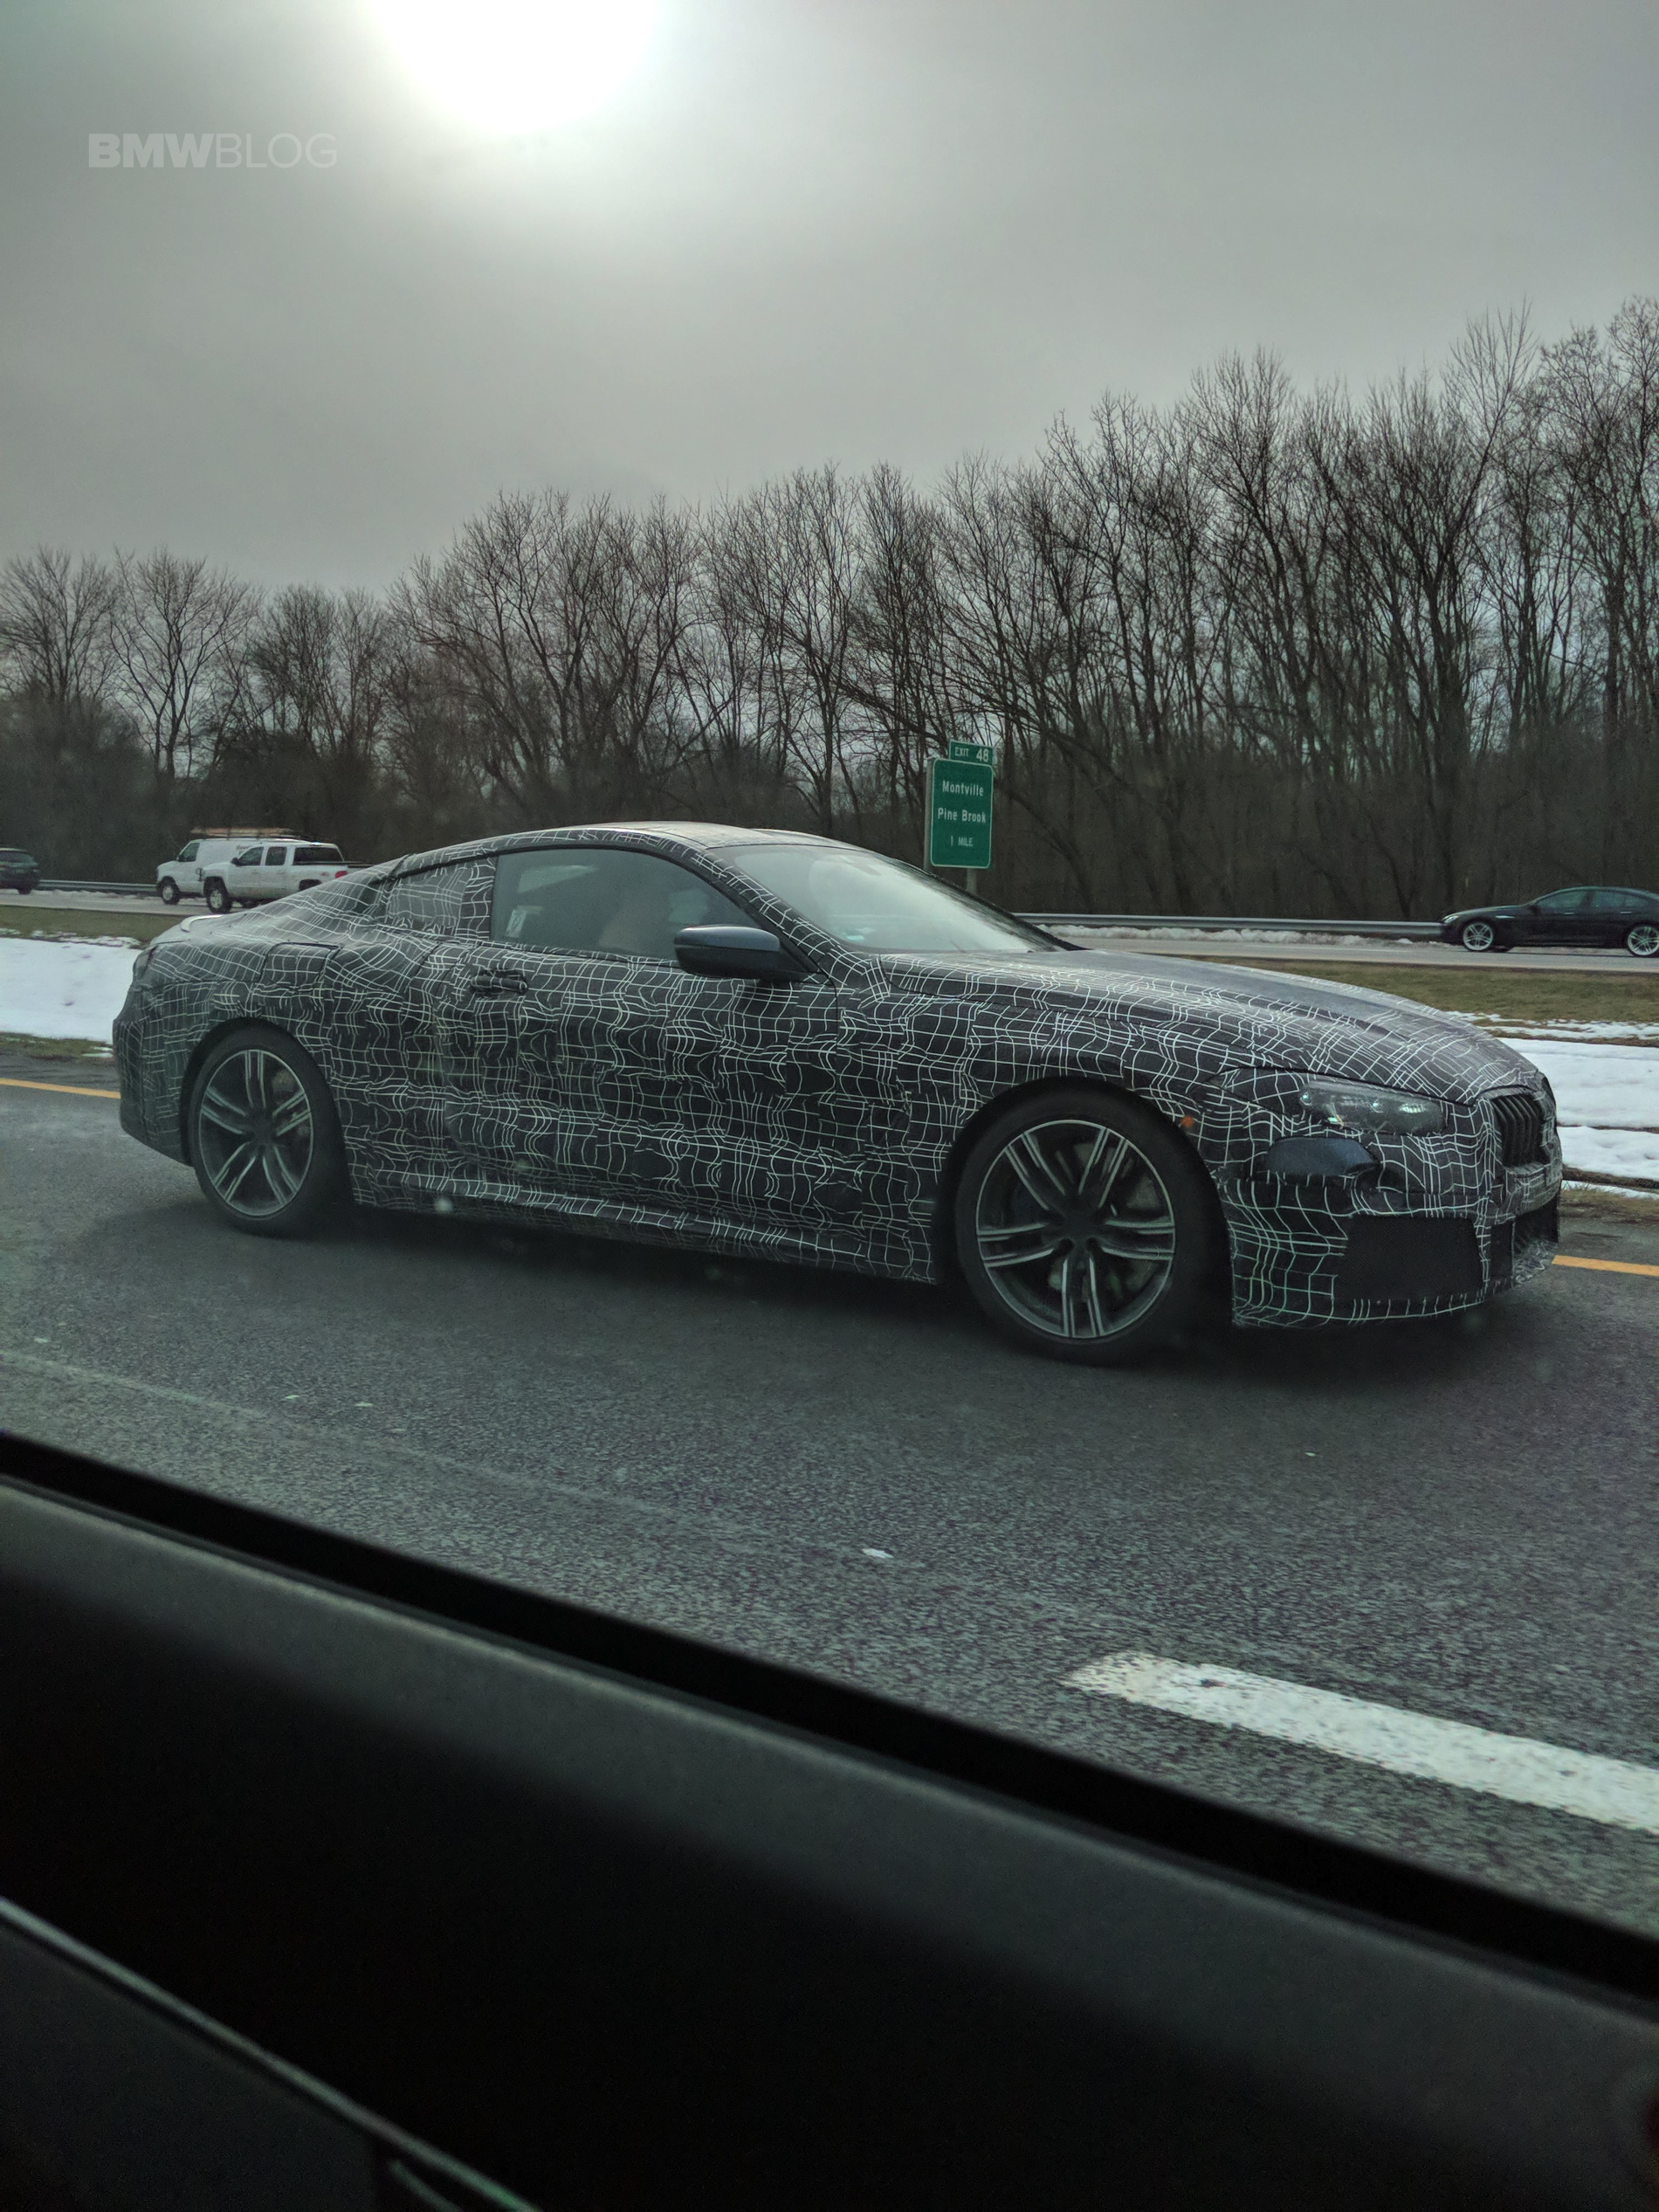 BMW 8 Series Coupe NJ spied 01